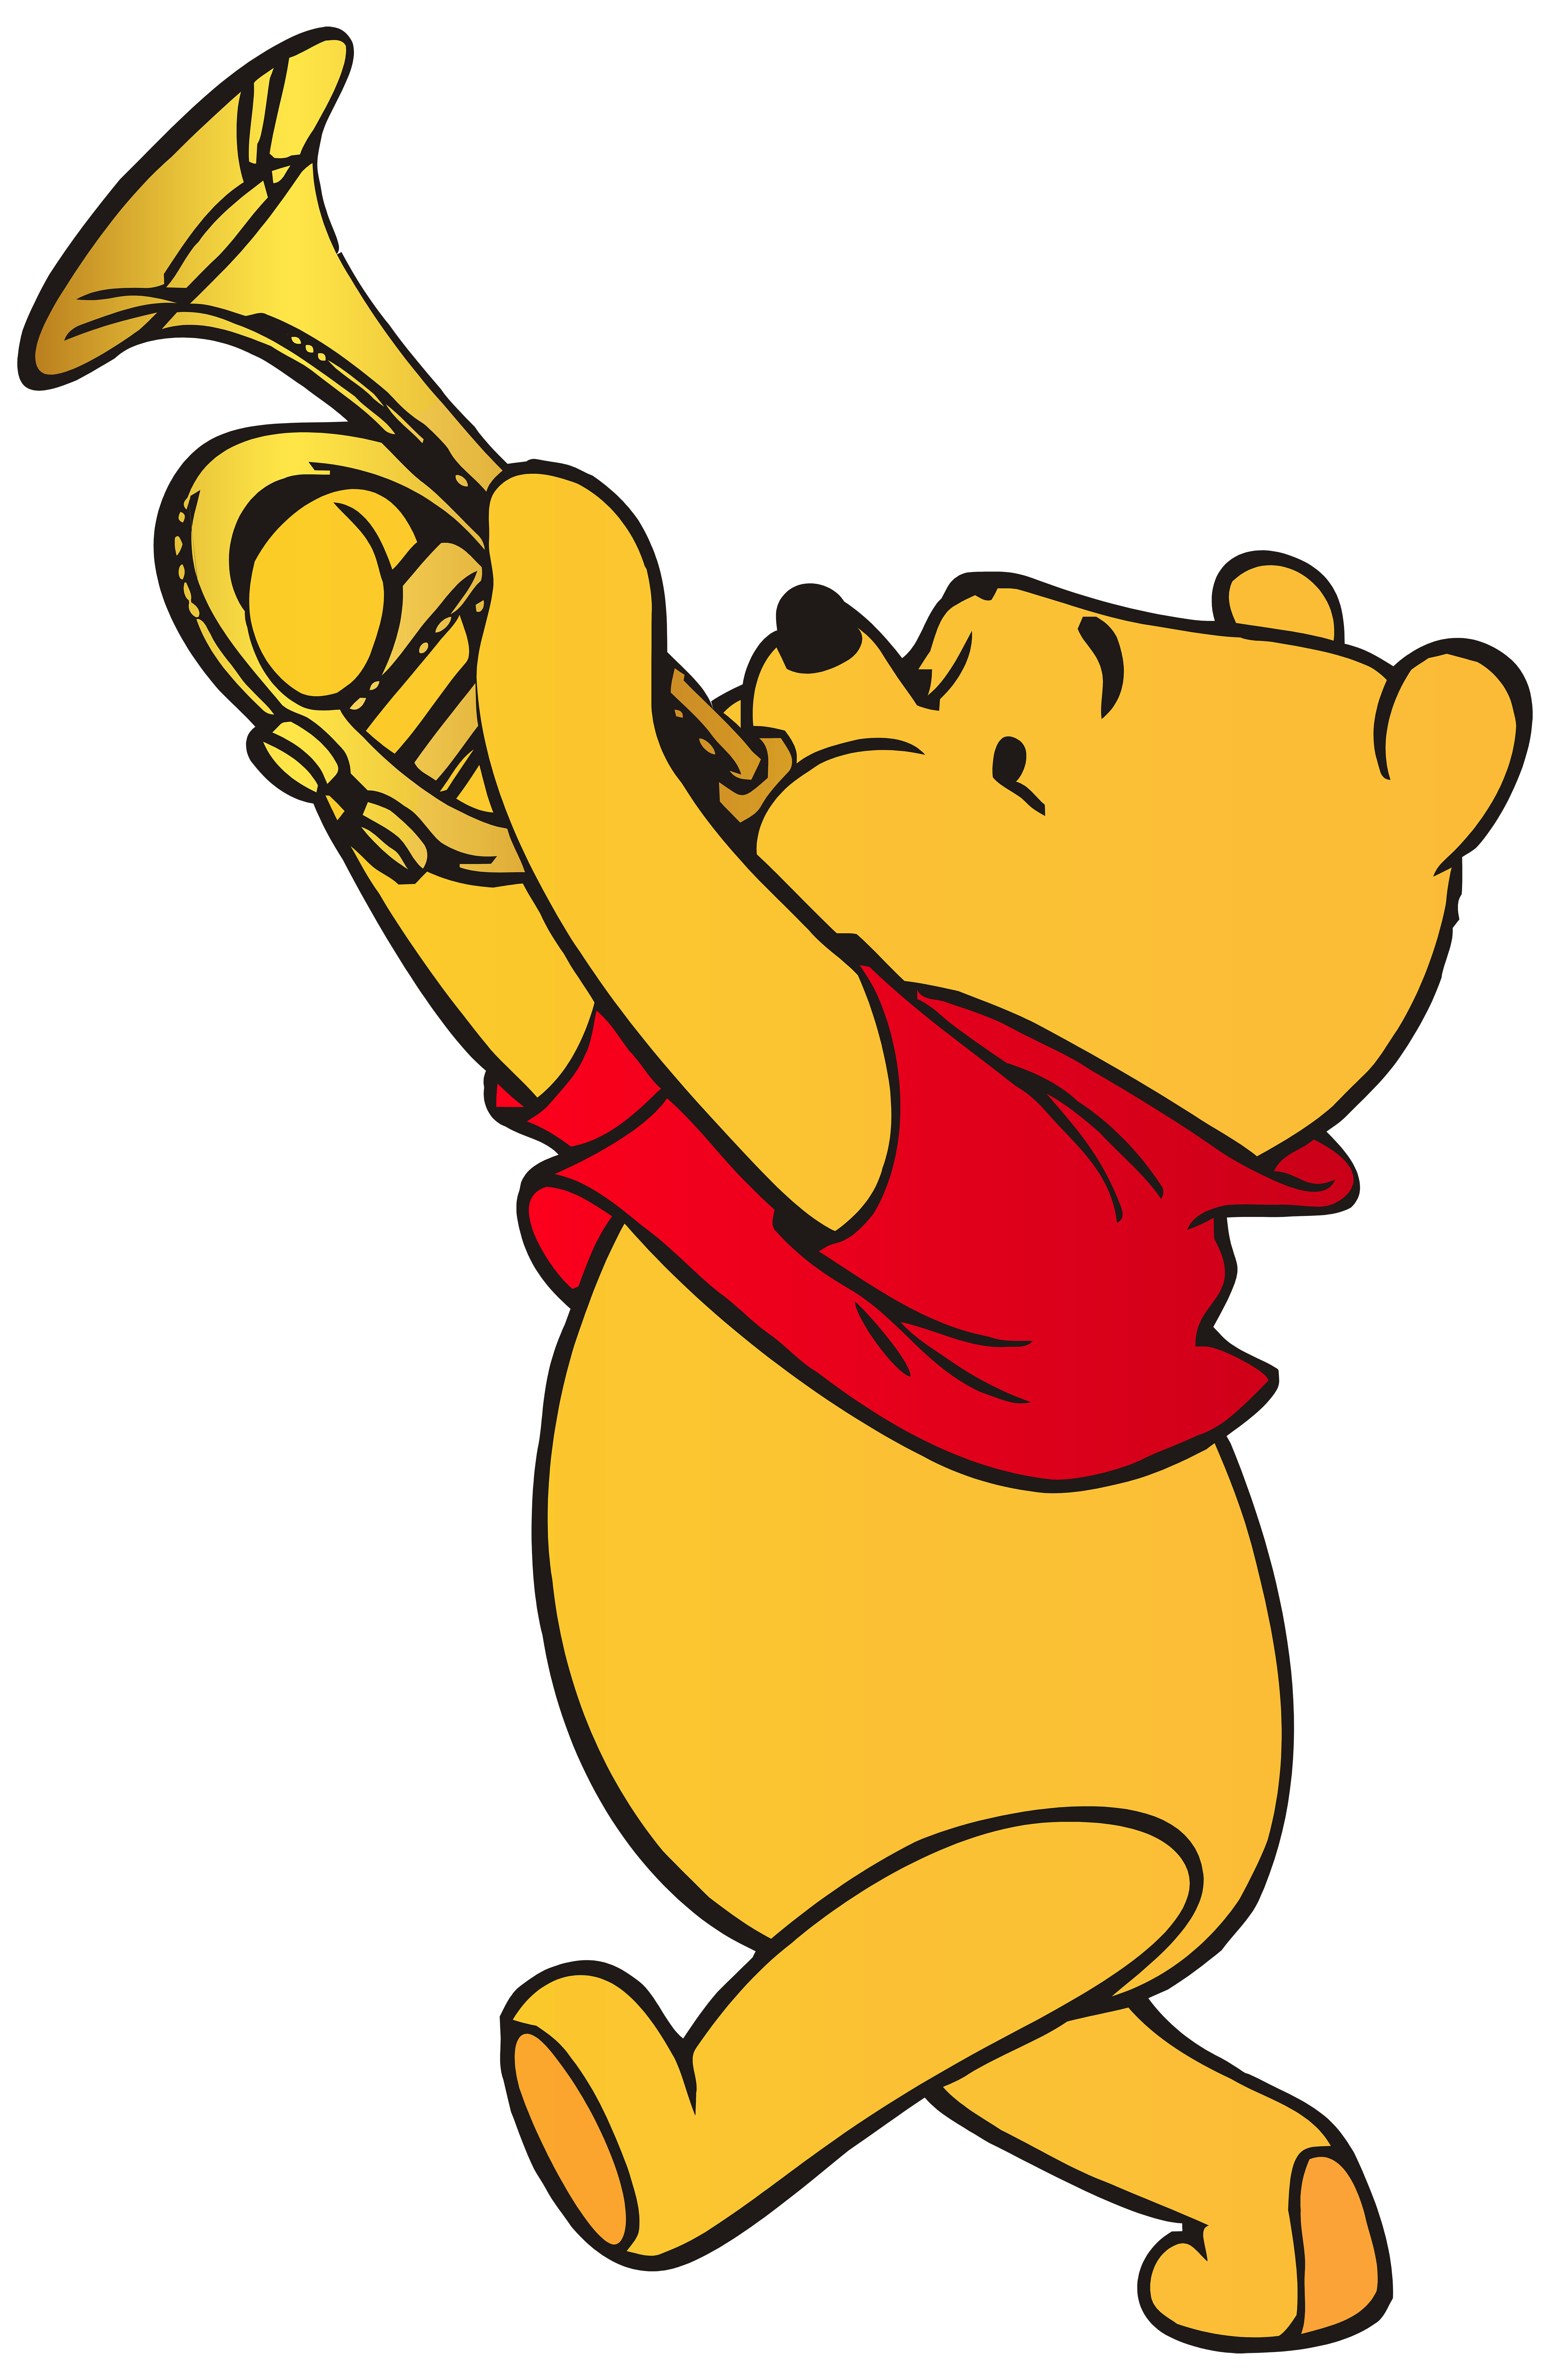 Winnie The Pooh Clarinet Png Pic PNG Images